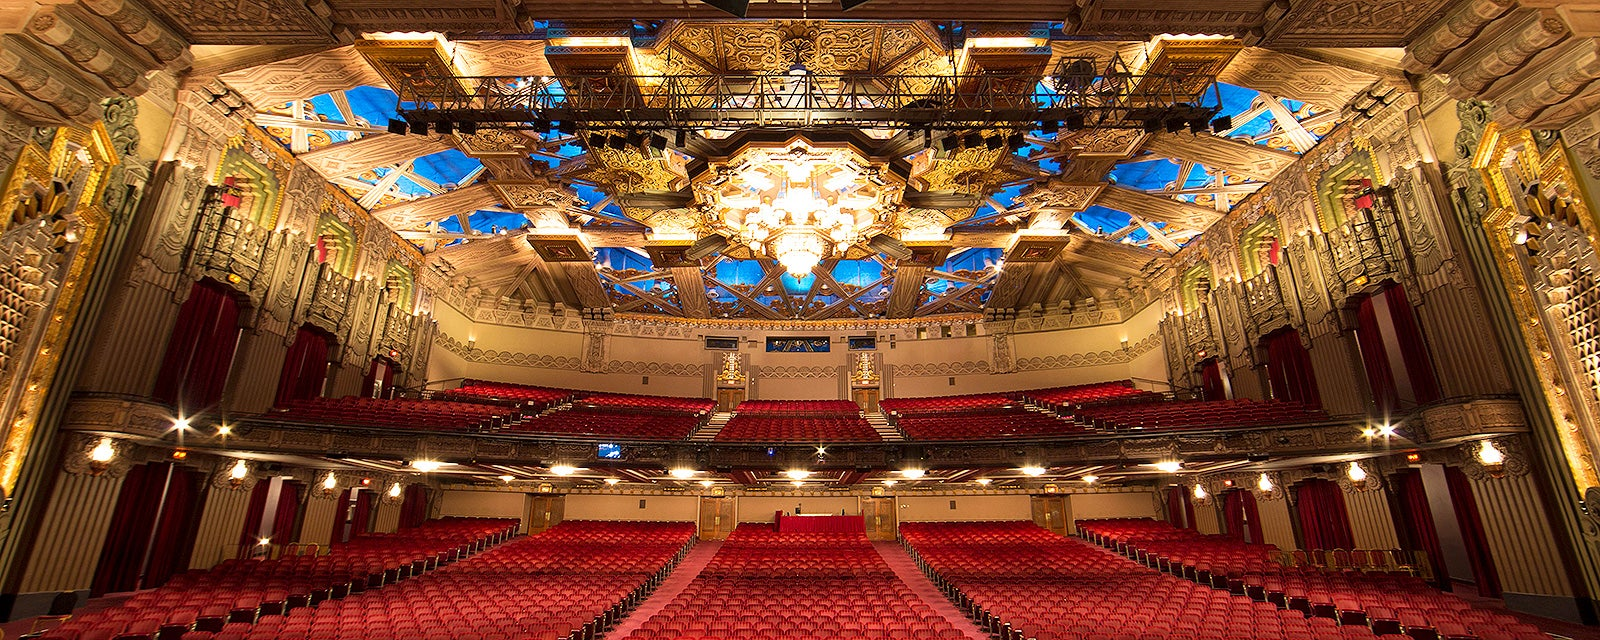 The Pantages Theater Los Angeles has a history as grand and diverse as the stage and screen fare which audiences have flocked to enjoy there for half a century.